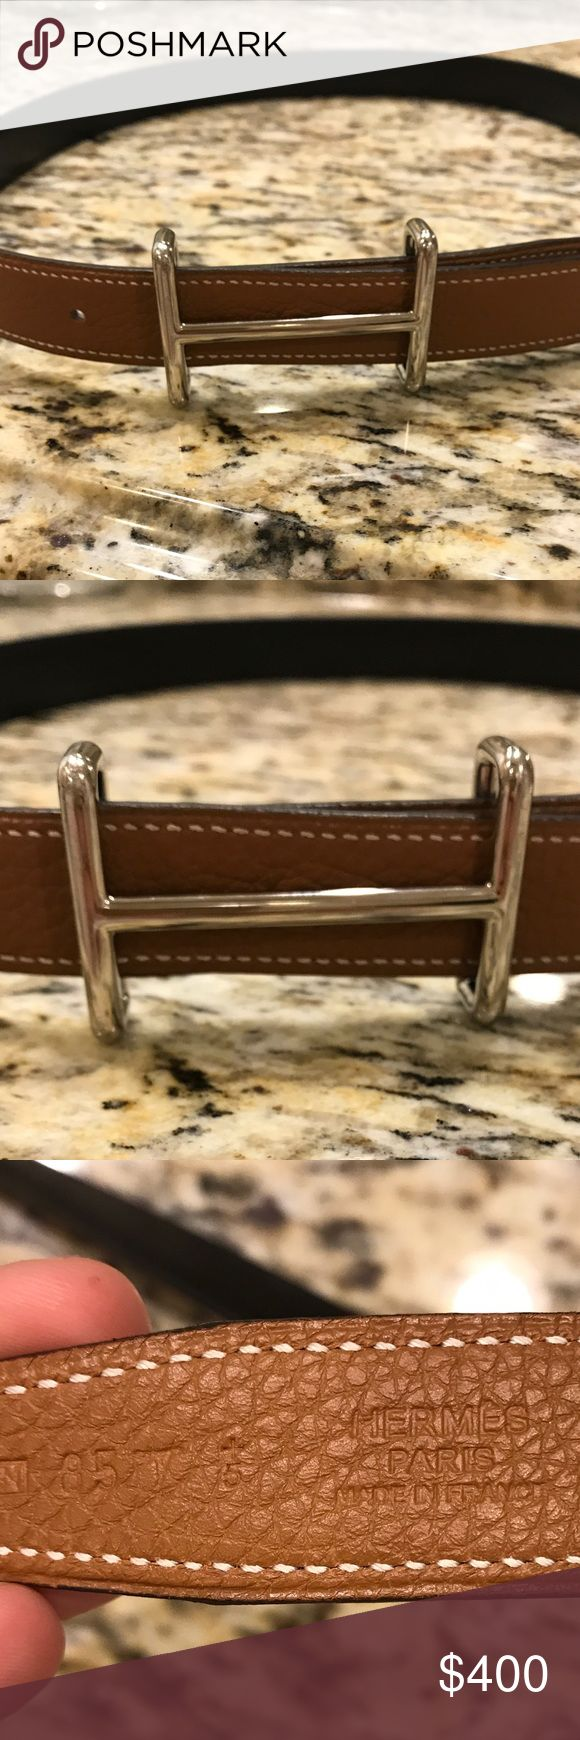 Hermes Reversible Black/Tan Belt 85 Idem Buckle 100% Authentic Hermes Leather Belt - reversible black/tan.  85 cm.  Silver palladium authentic Hermes buckle.  Perfect condition- no signs of wear.  3 belt holes but holes could be added by a professional.  Absolutely gorgeous!  Price firm. Hermes Accessories Belts